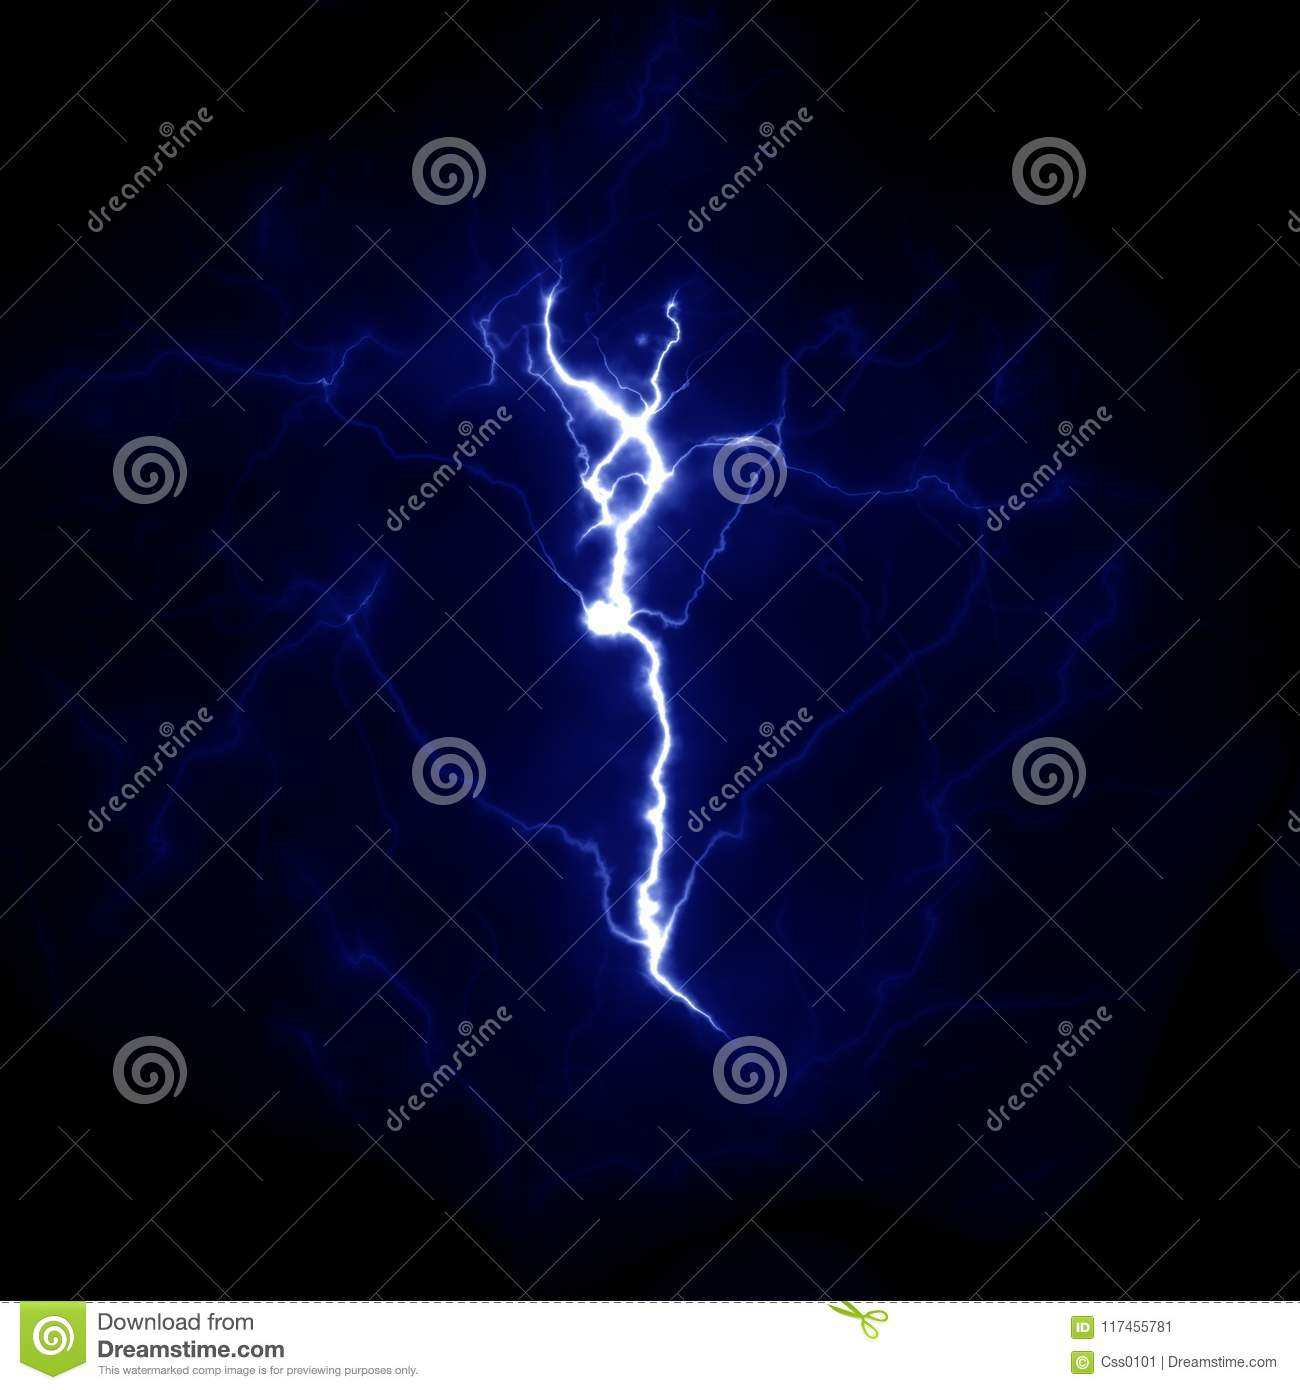 Lightning template. Electric thunderbolt in the sky. Nature image